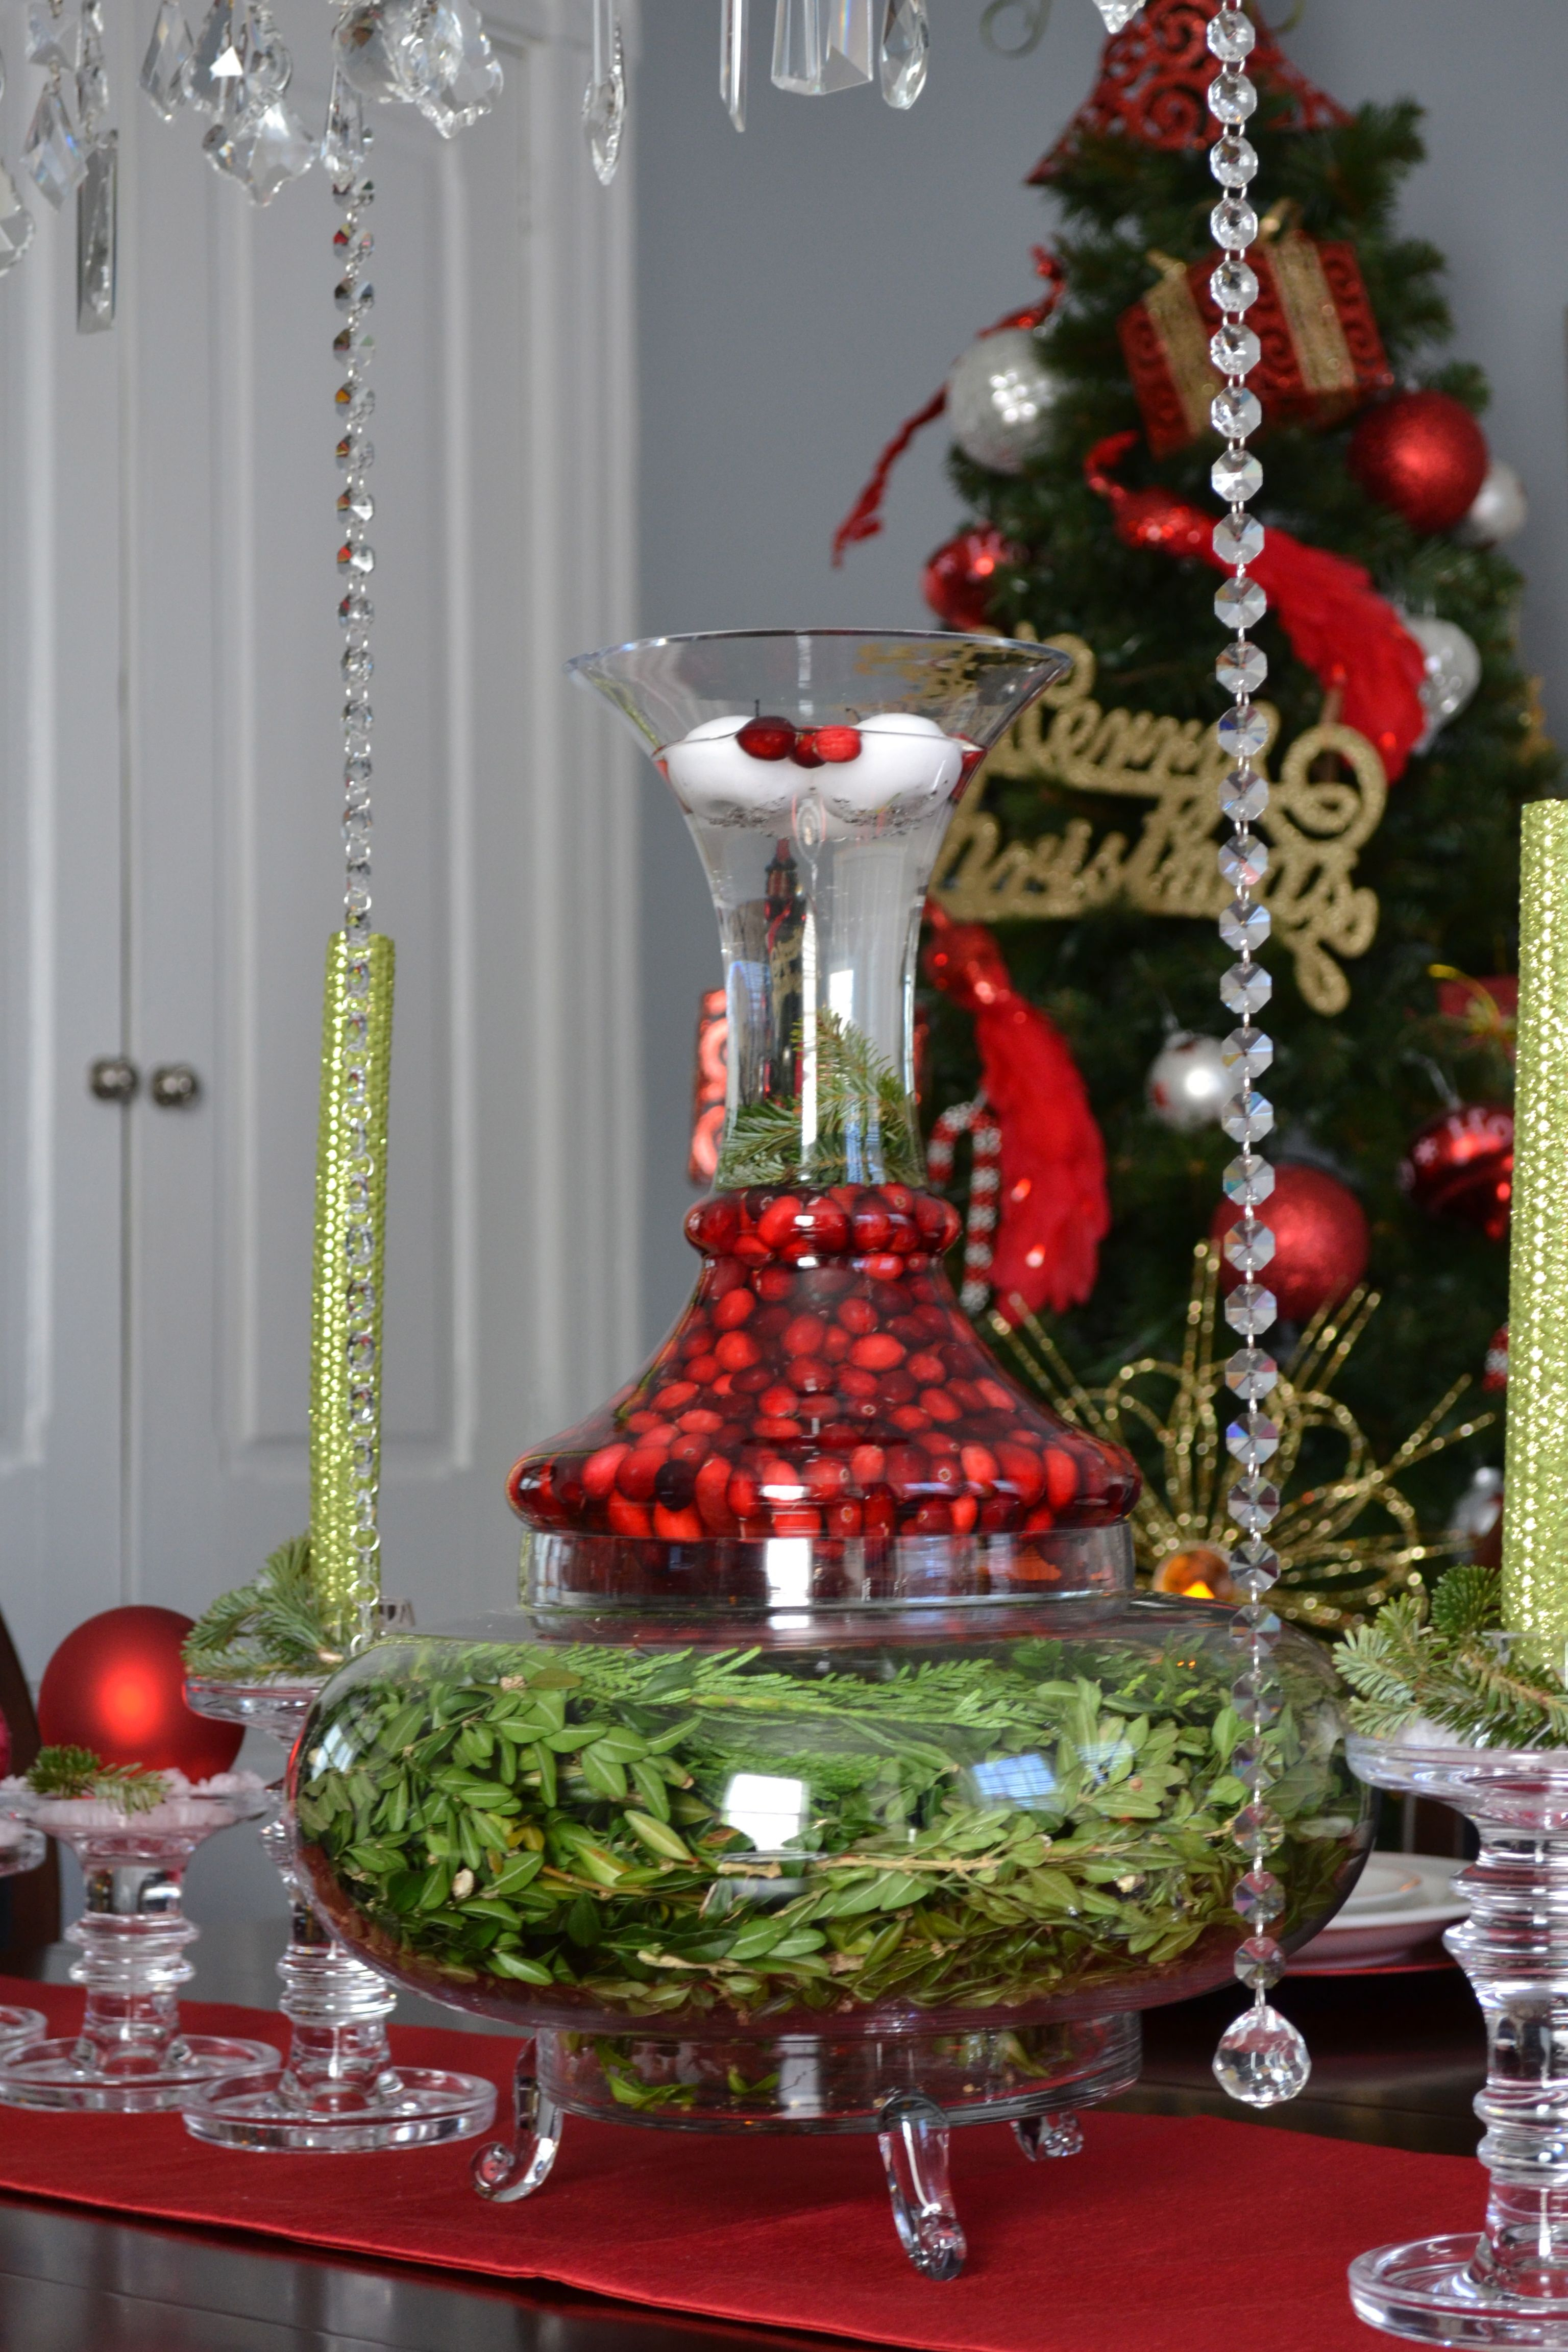 Christmas Table Centerpiece Greenery Cranberries In Water And Floating Candles Table Centerpieces Christmas Decorations Floating Candles